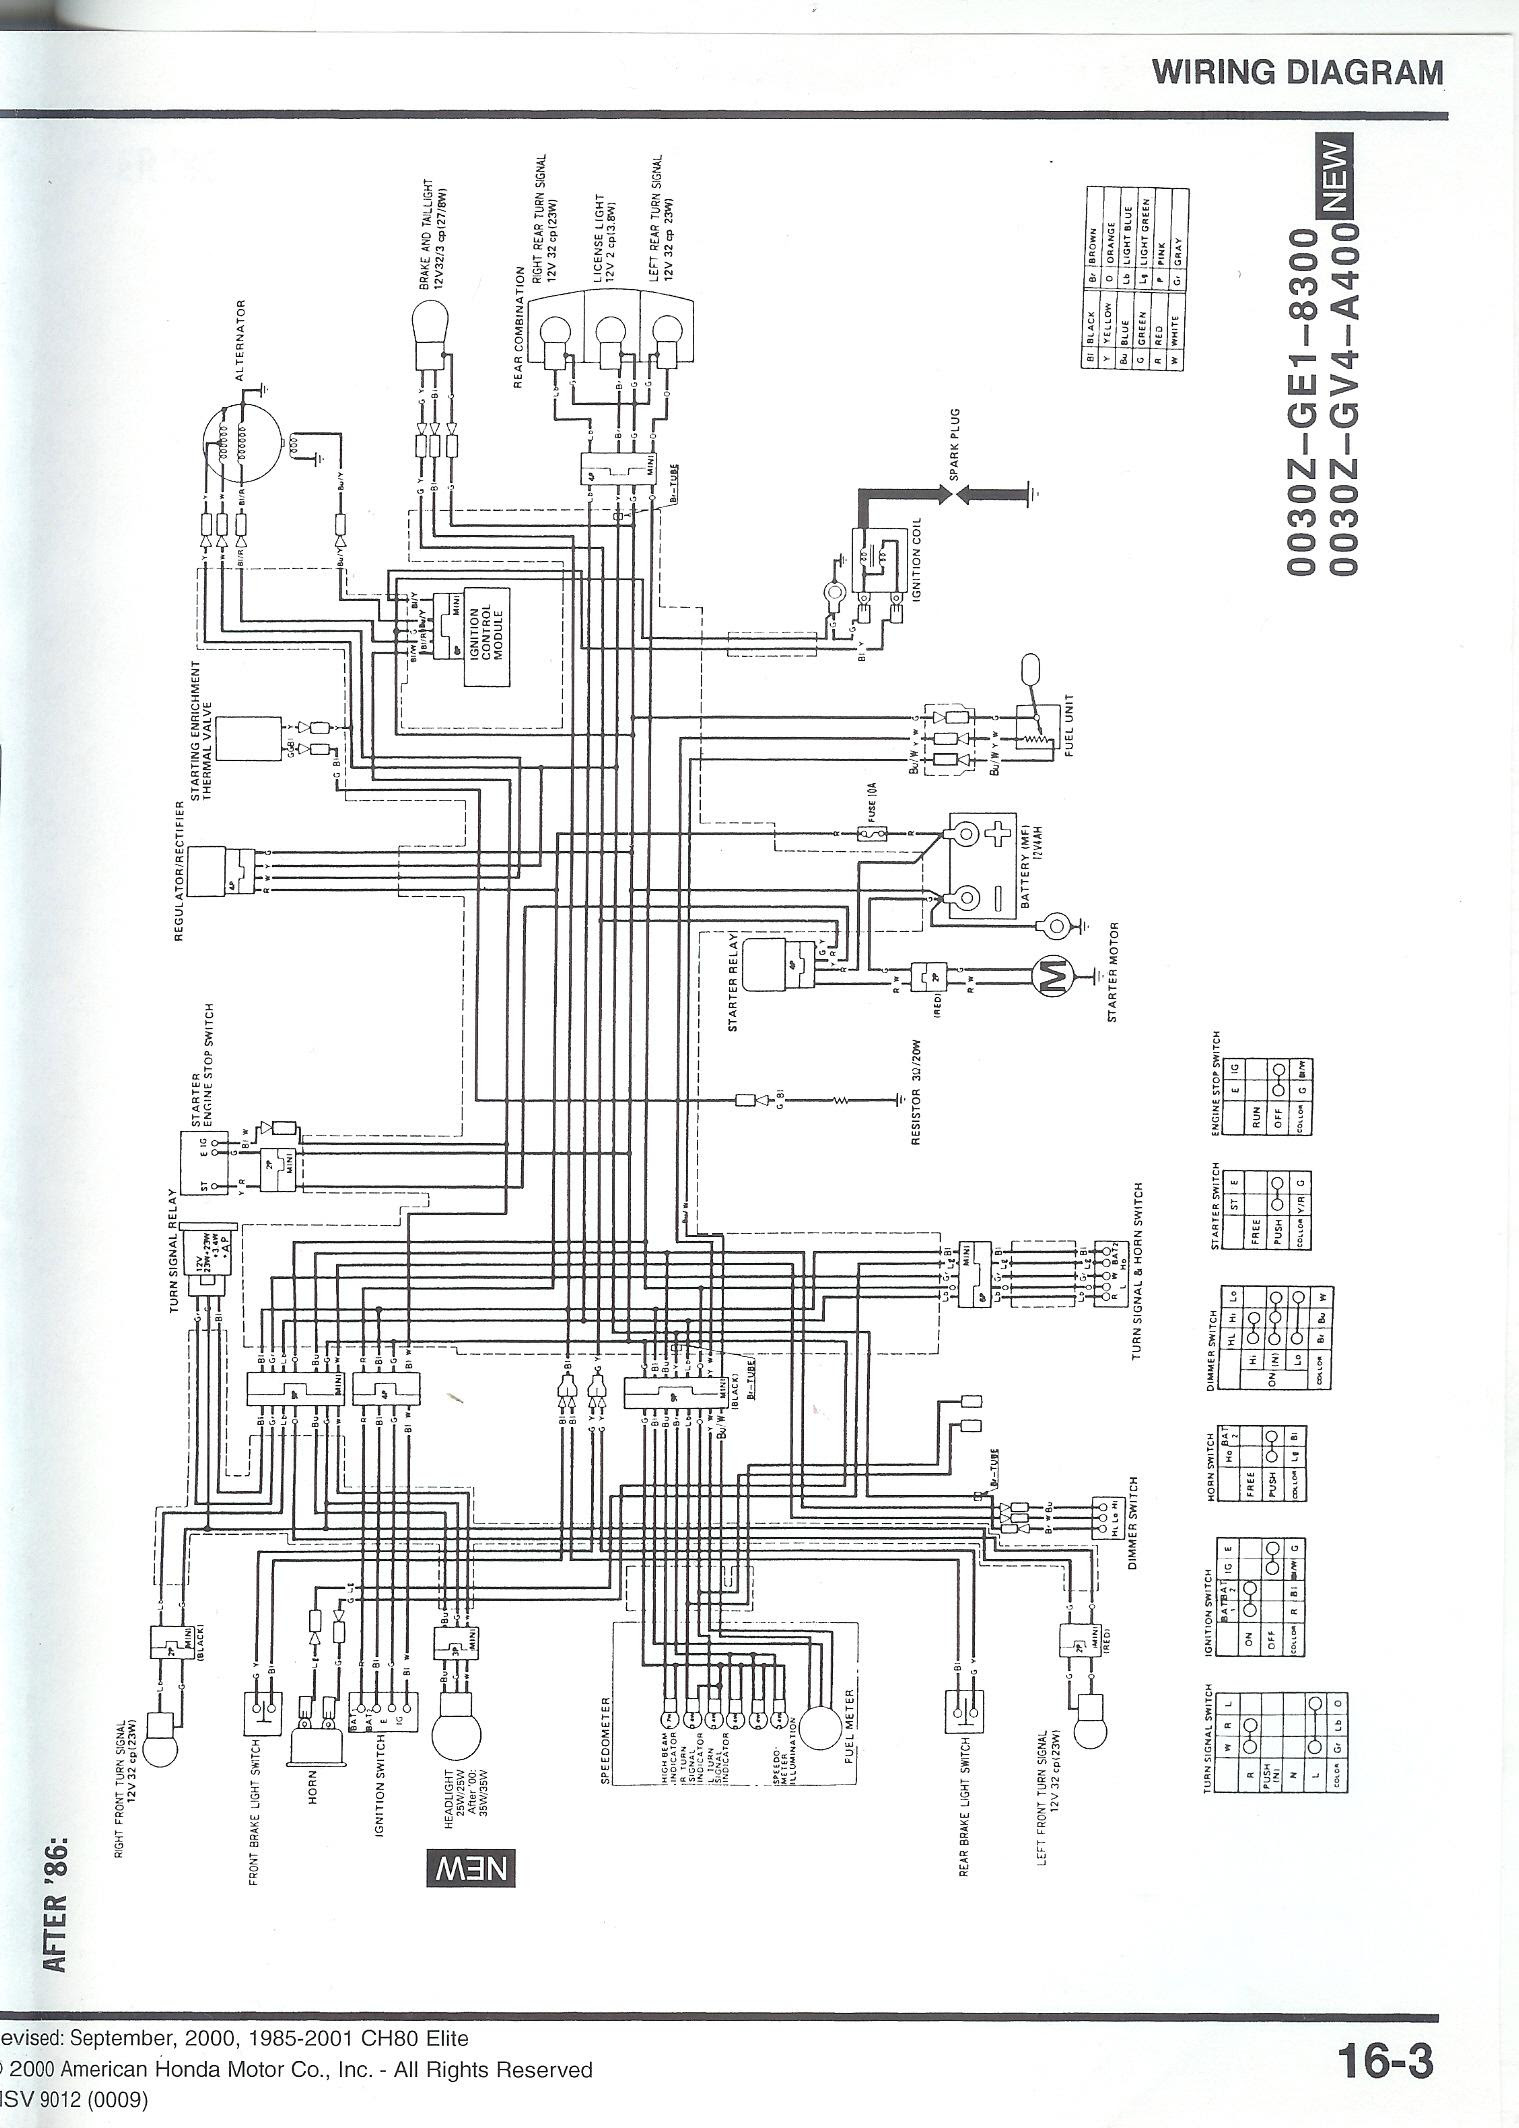 1986 Honda Elite 80 Wiring Diagram - Center Wiring Diagram deep-medium -  deep-medium.iosonointersex.itiosonointersex.it